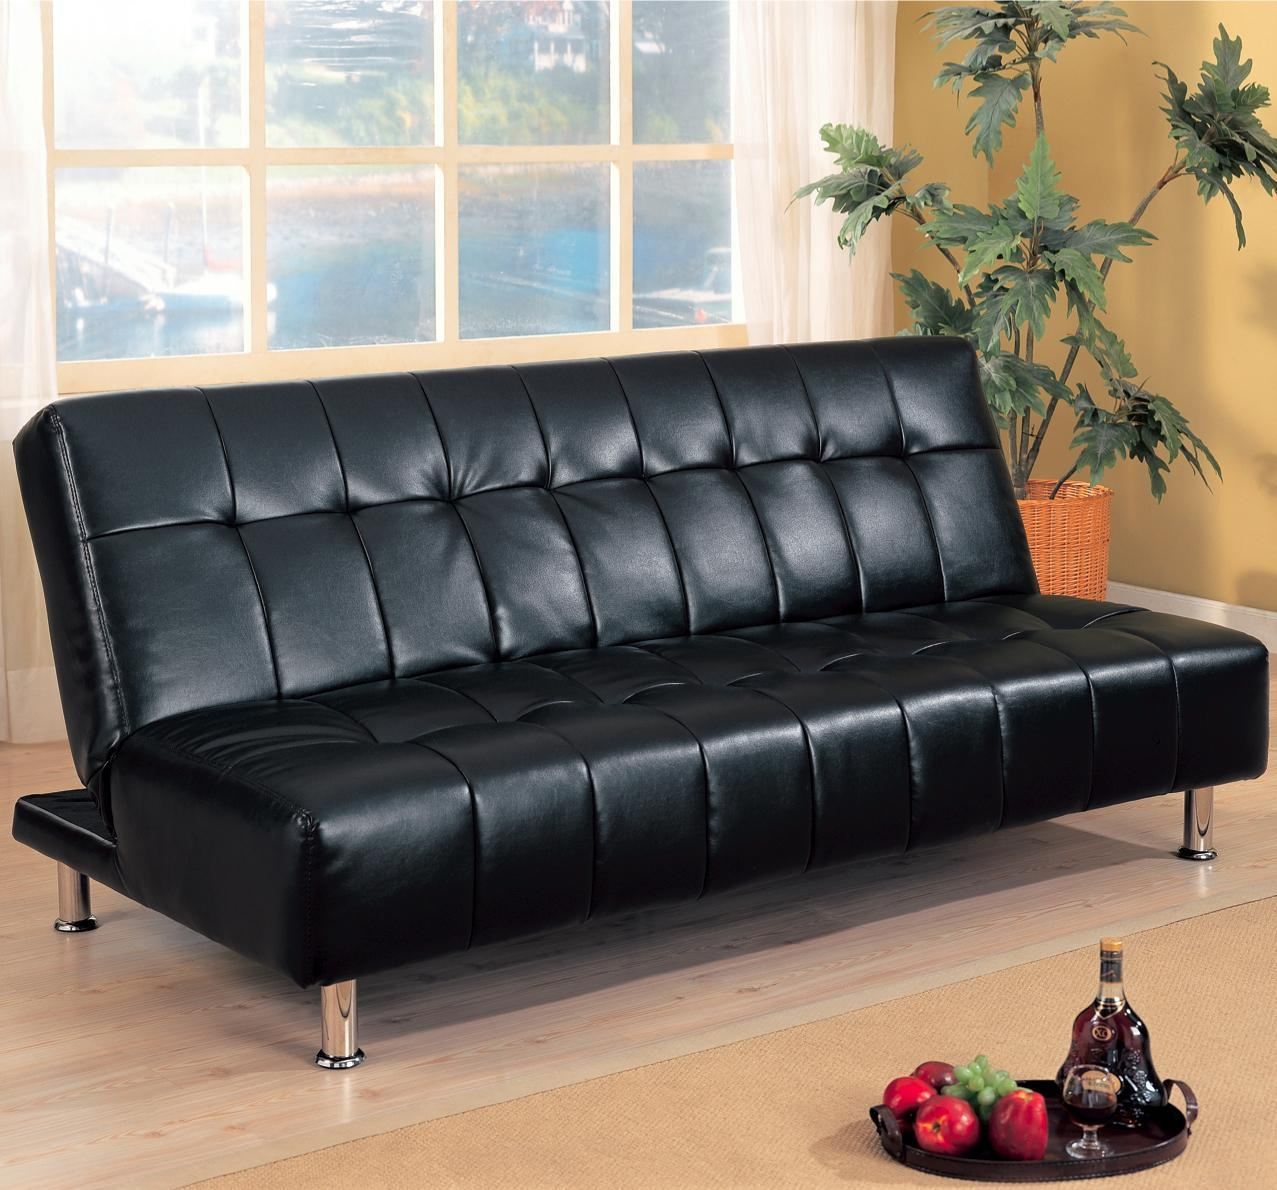 Convertible Sofa Futon | Tehranmix Decoration Intended For City Sofa Beds (Image 6 of 20)